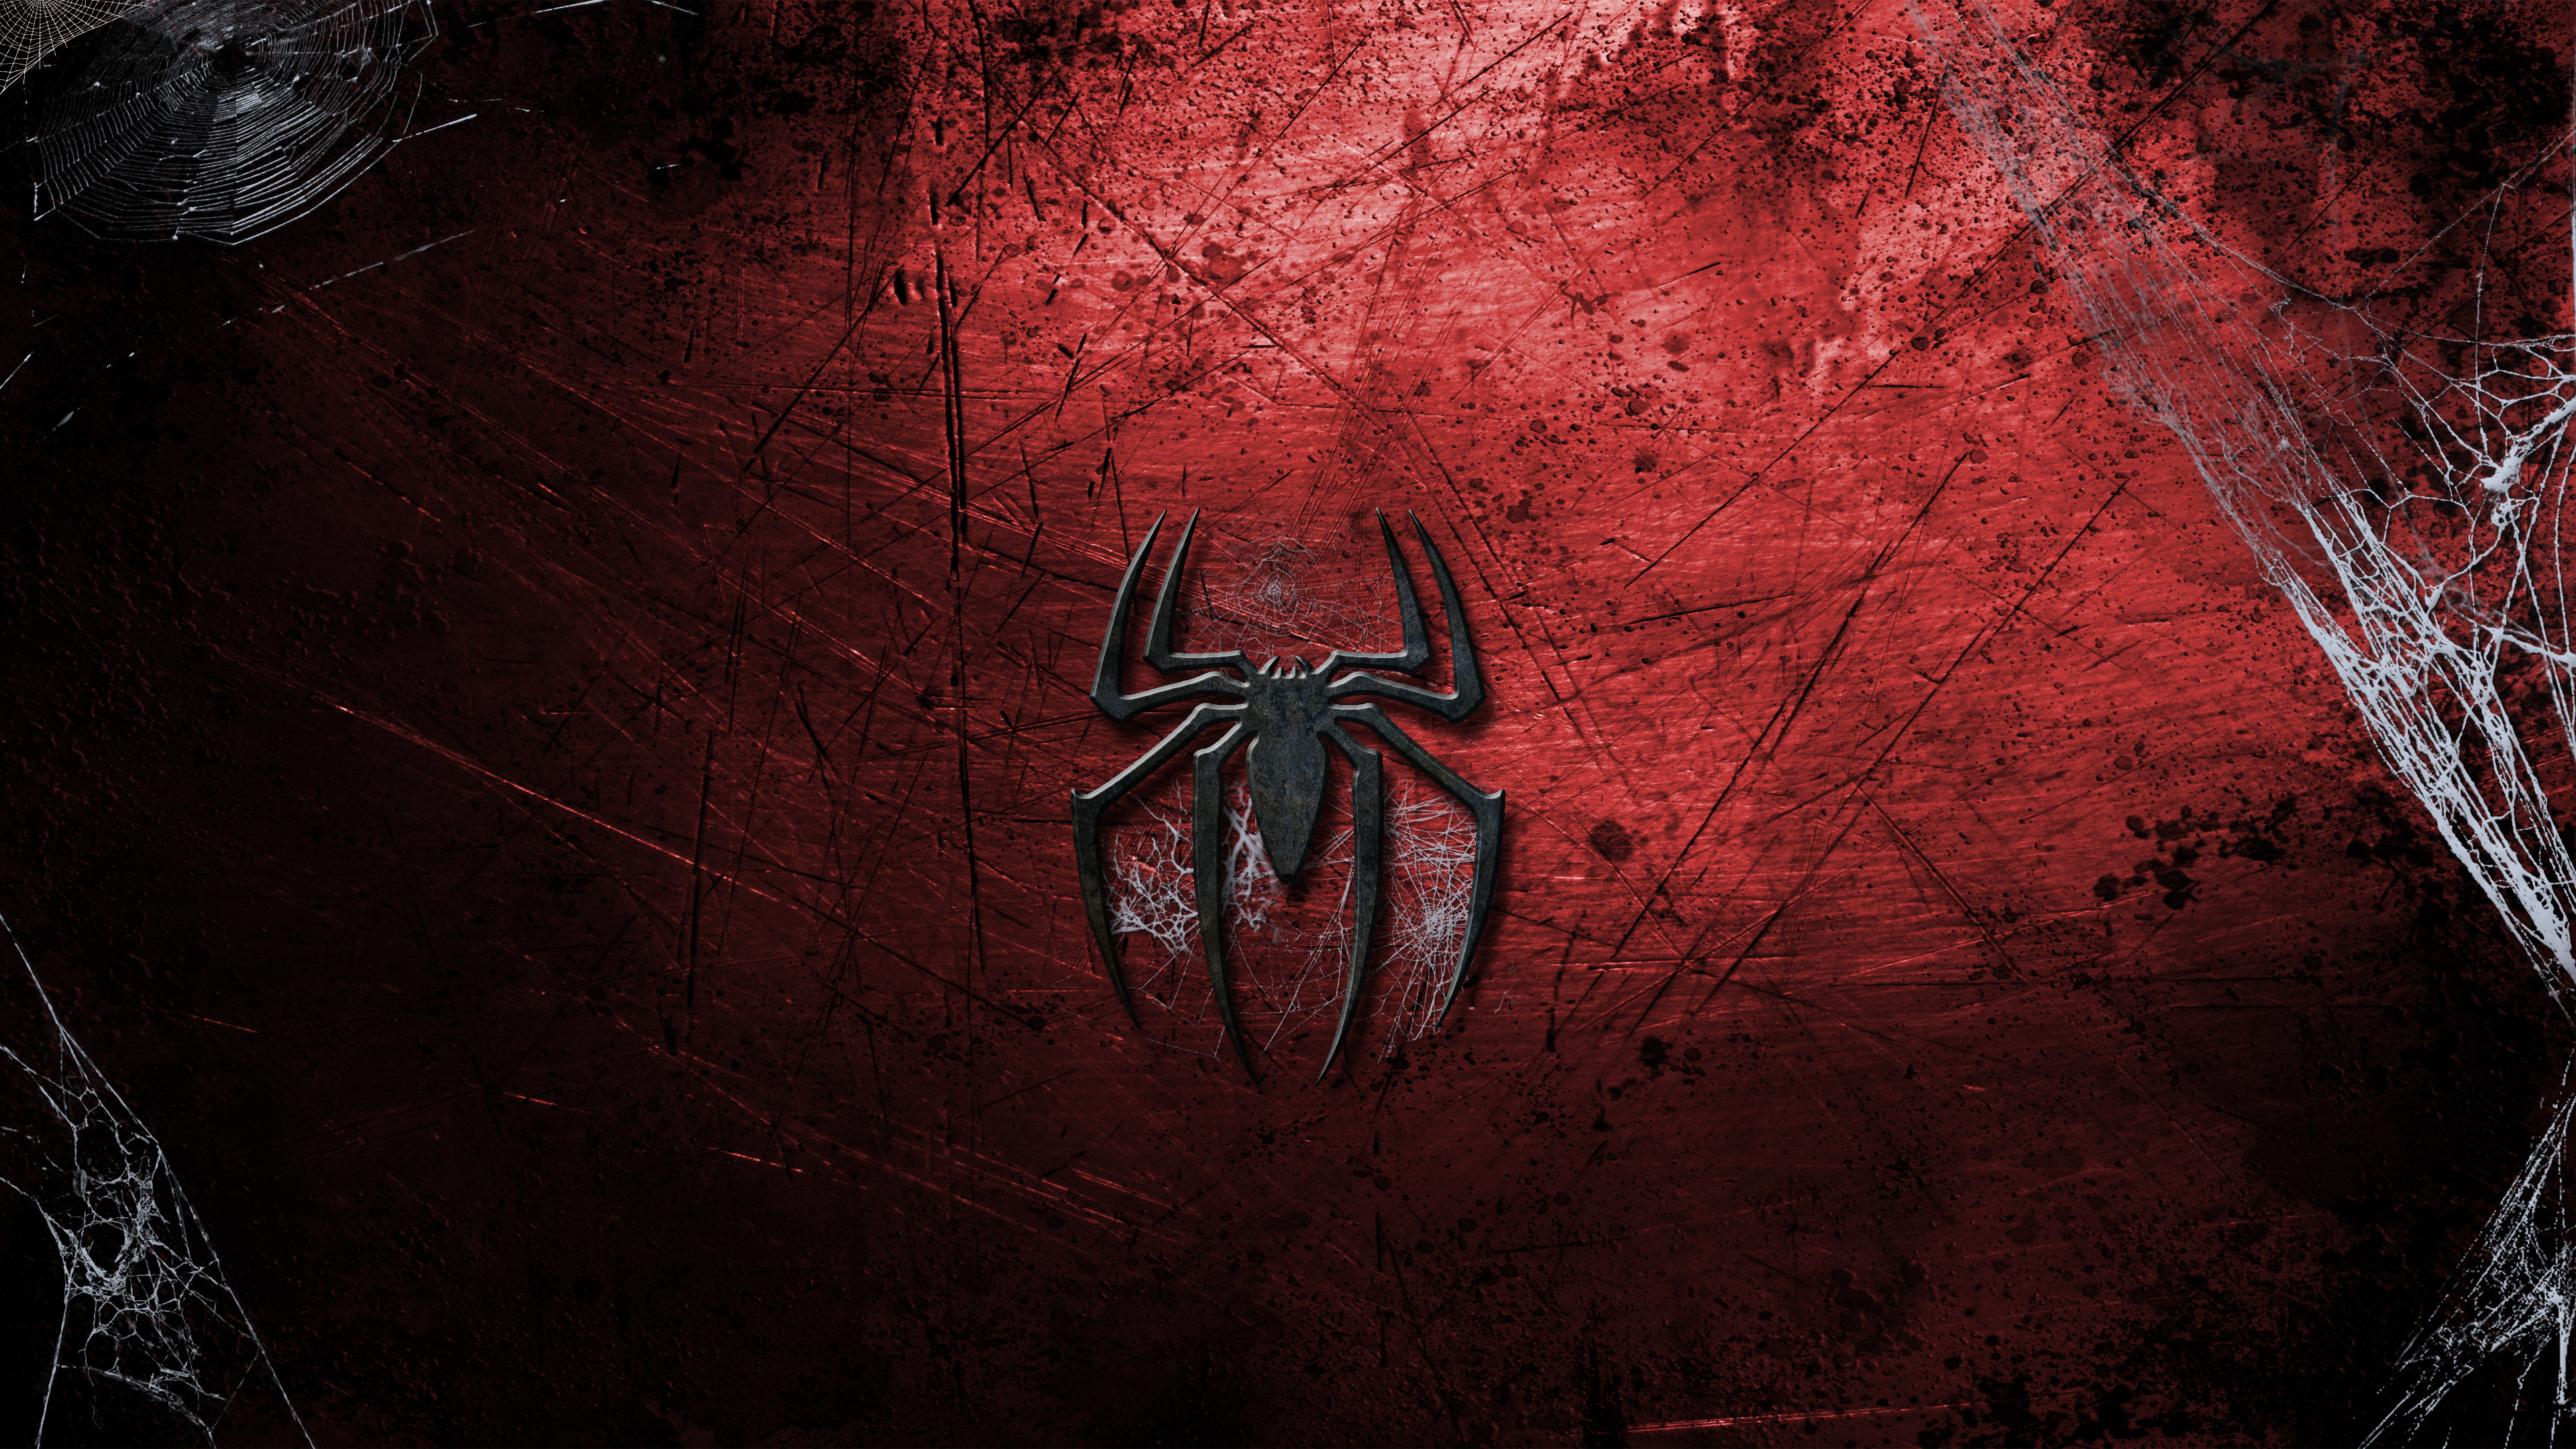 wallpaper.wiki-Spiderman-Wallpaper-PIC-WPD002683